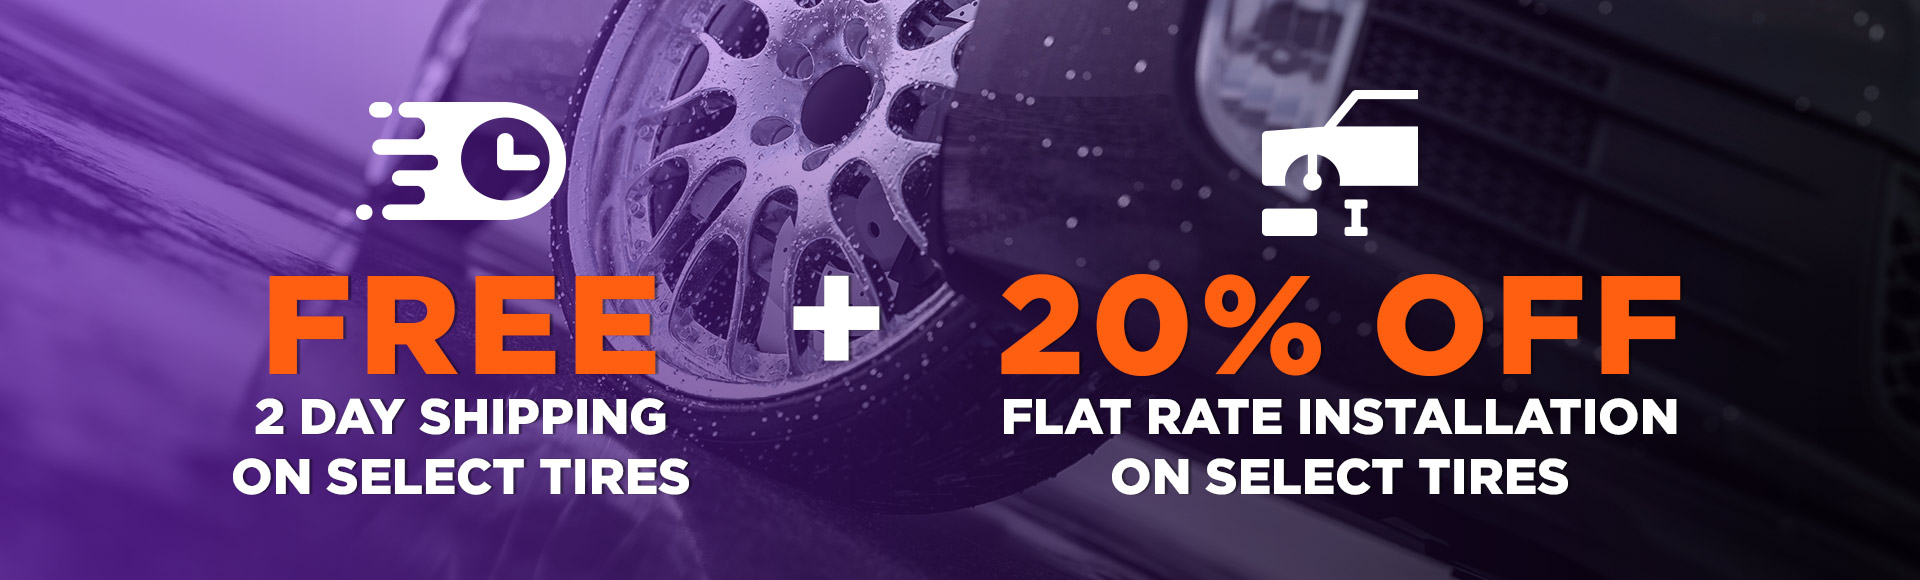 Free 2 Day Shipping Plus 20% Off Flat Rate Installation on Select Tires